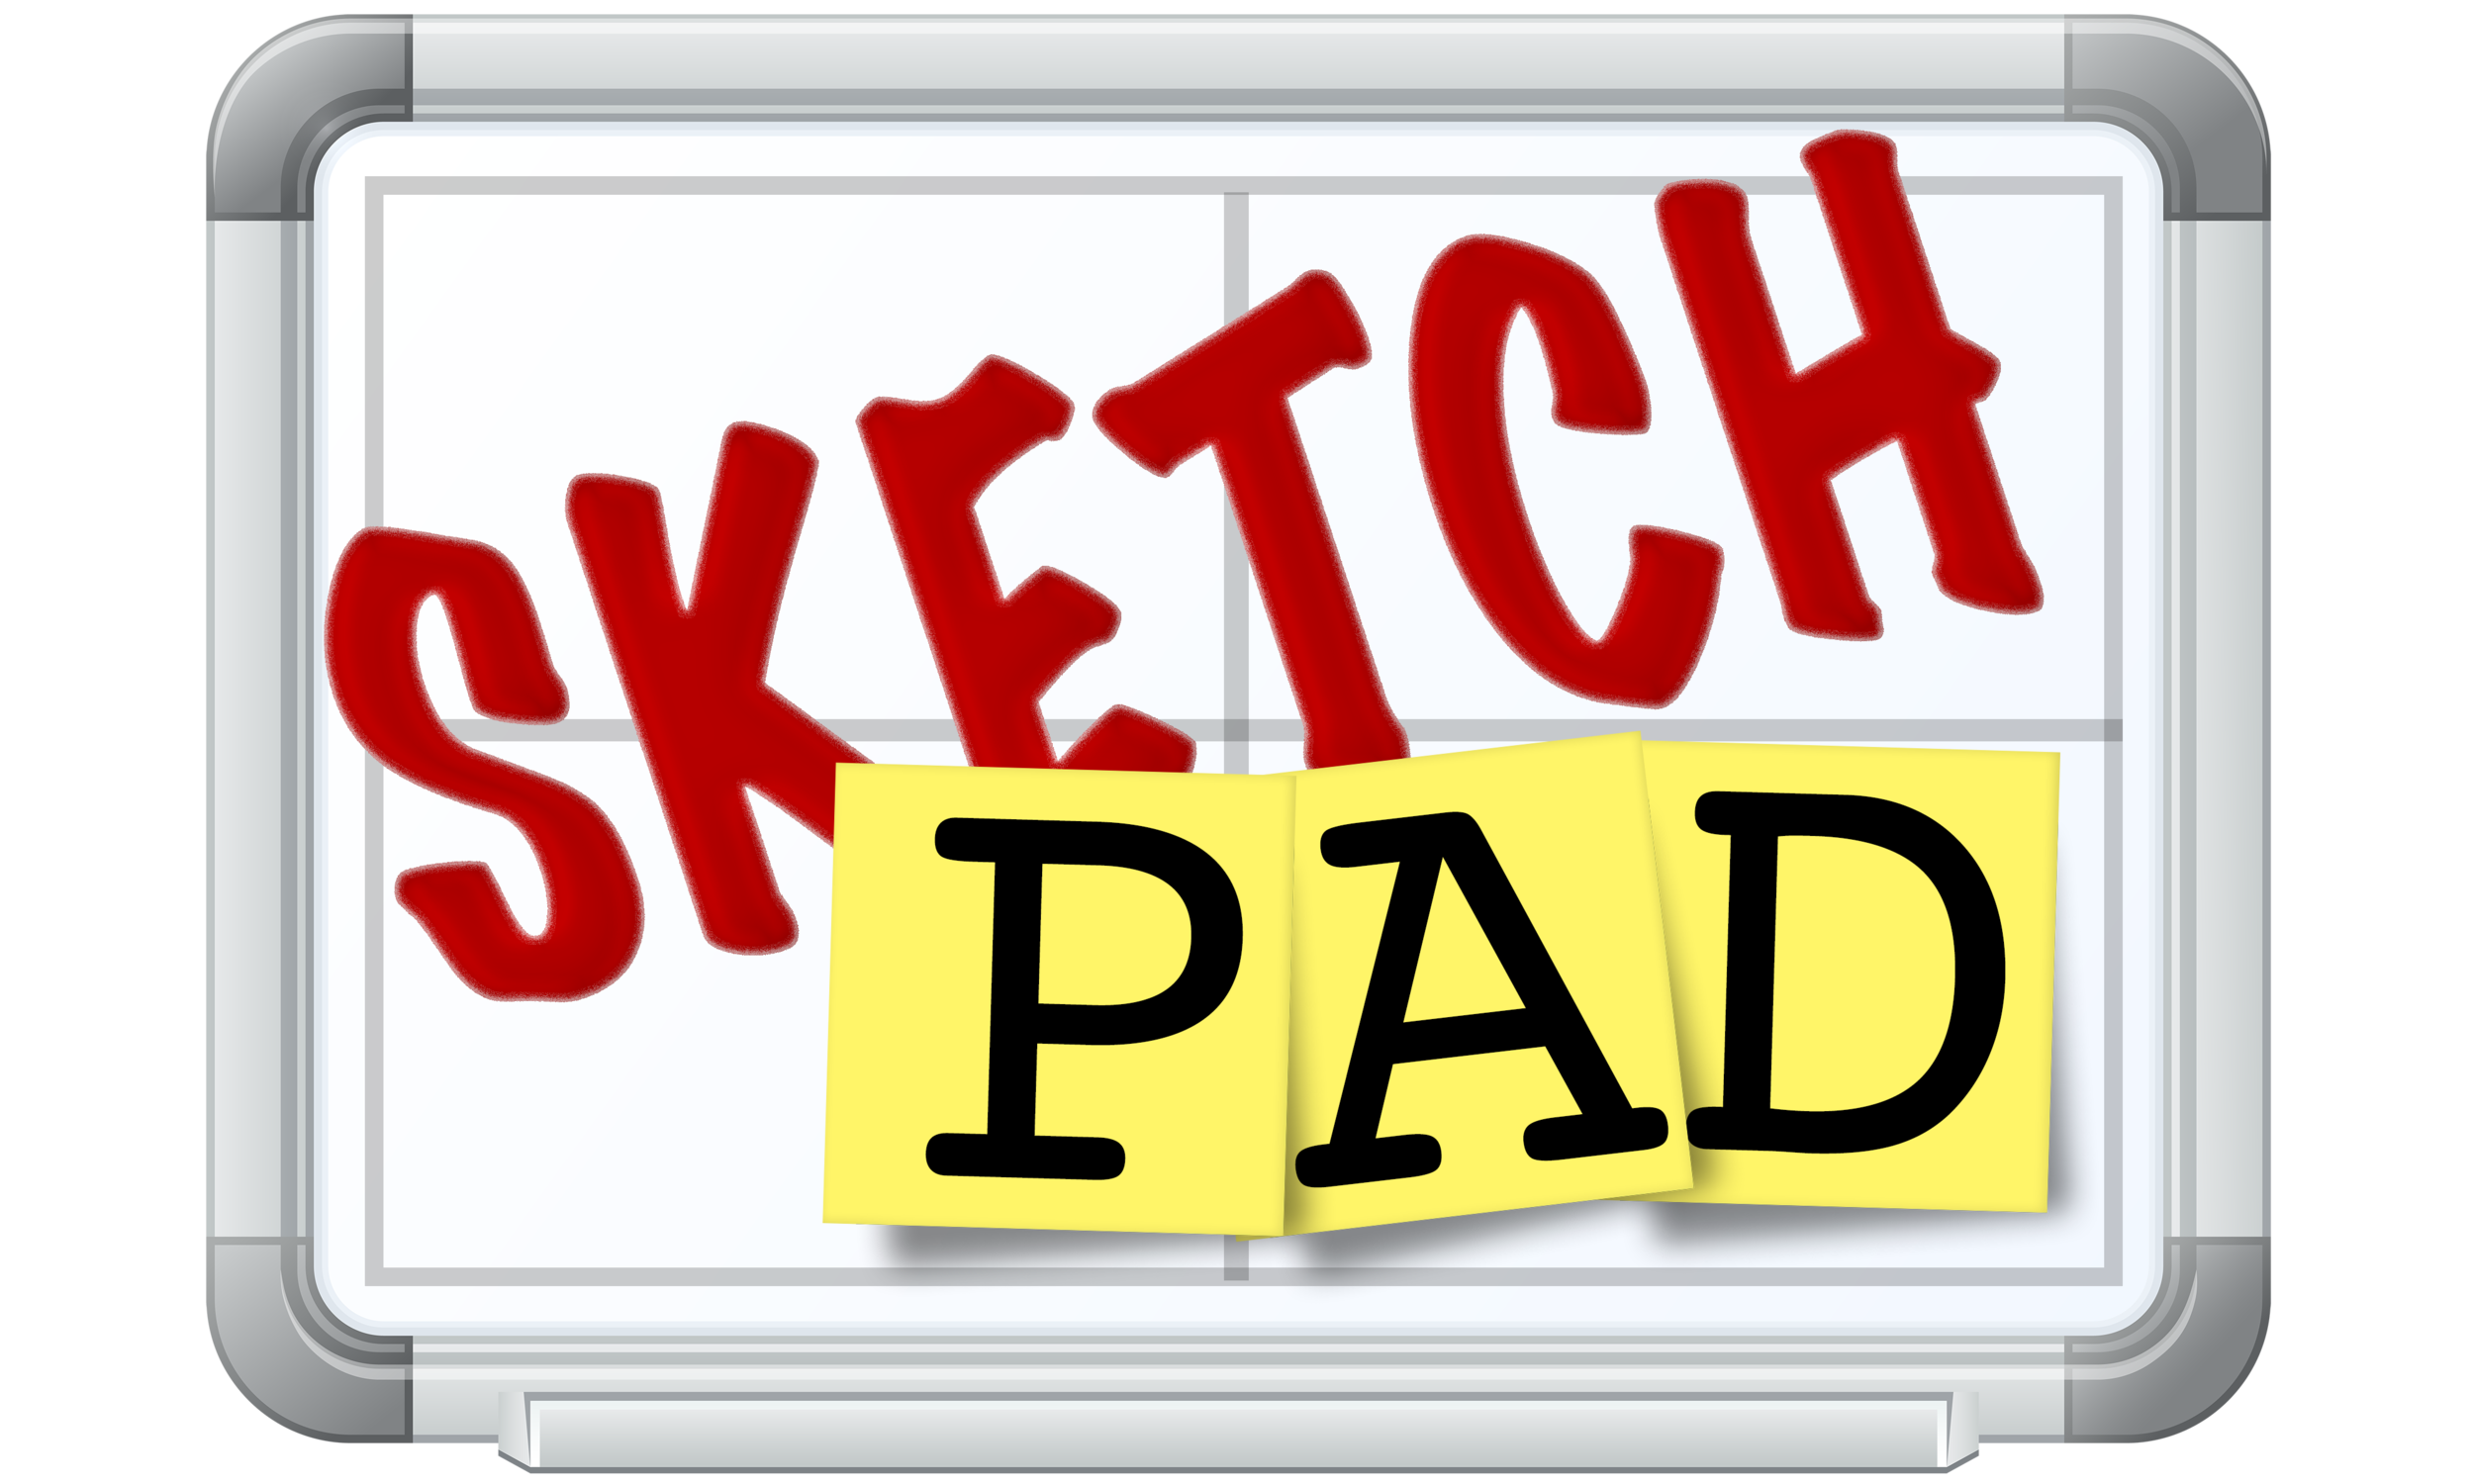 Copy of Sketch Pad